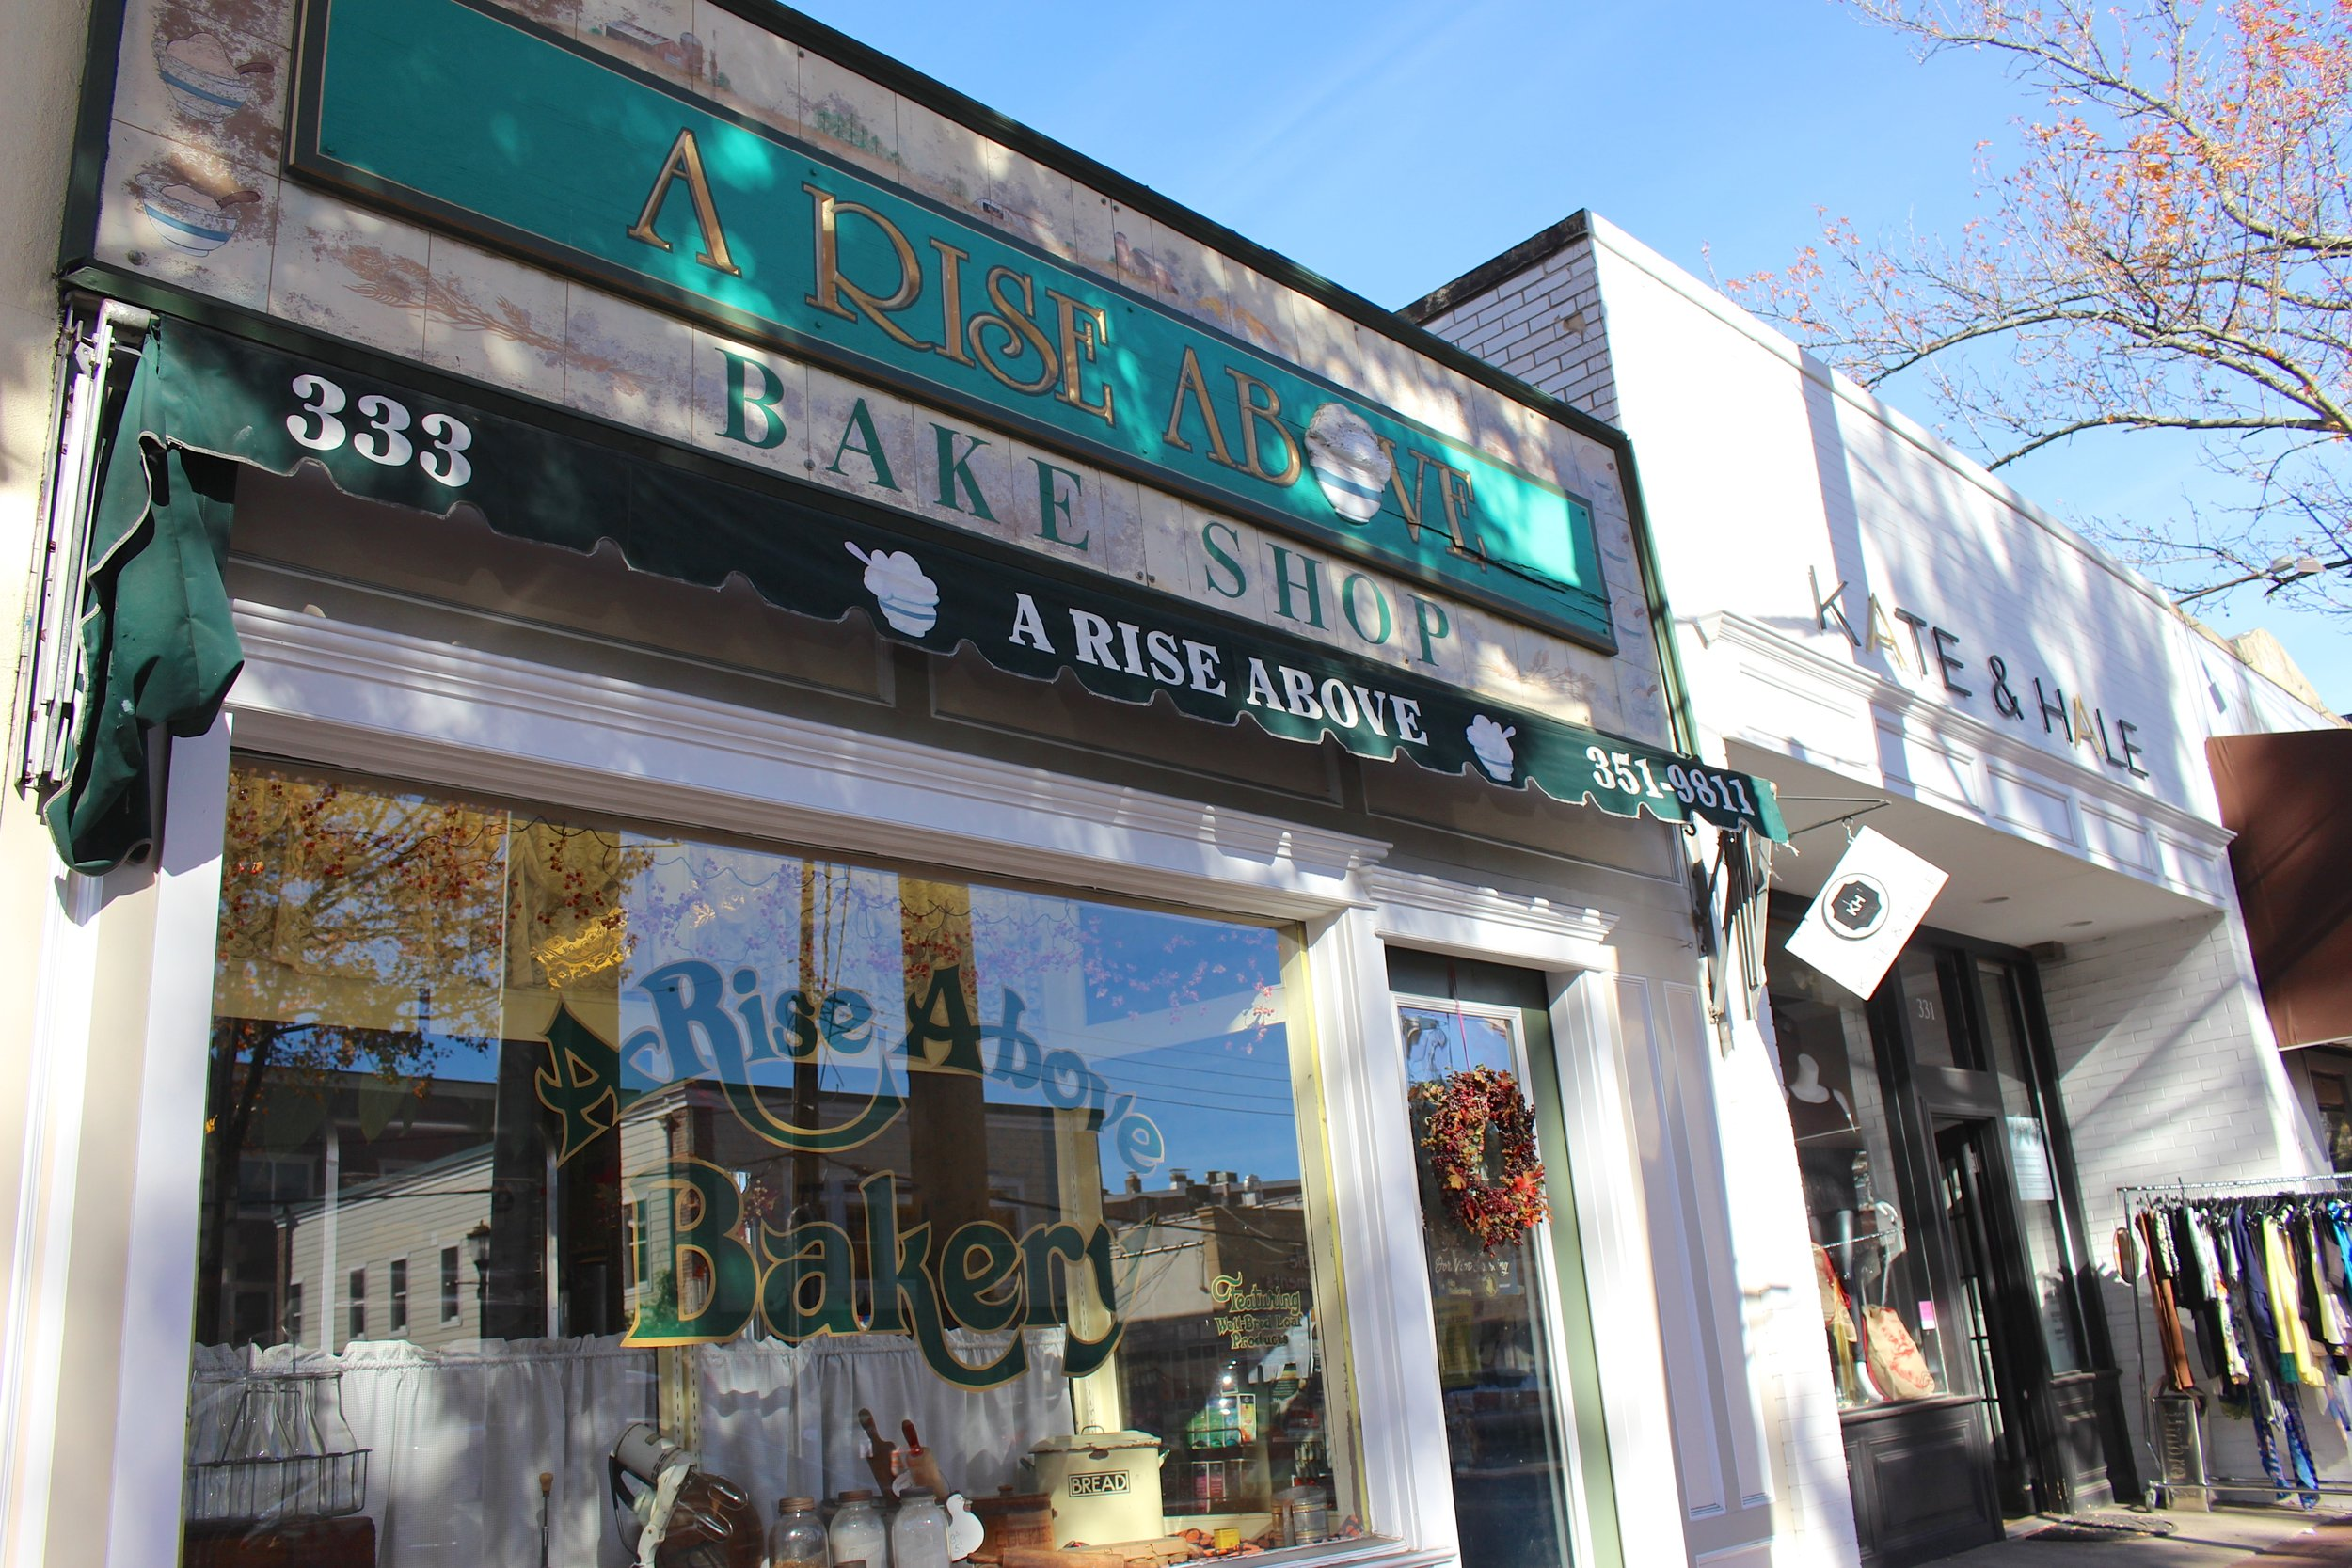 A Rise Above Bake Shop has been serving the Huntington community for 37 years.